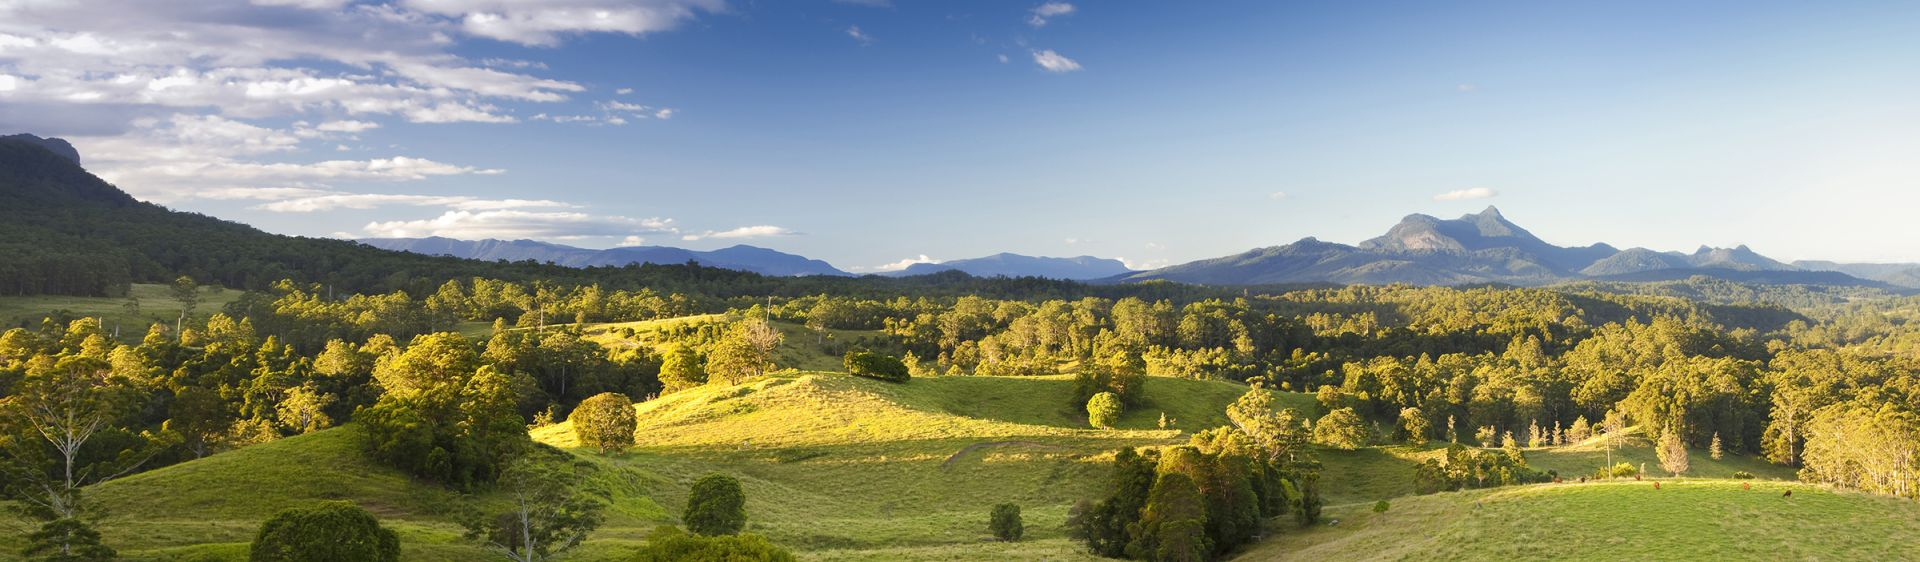 Murwillumbah countryside with Mt Warning in distance, Tweed district, Northern Rivers